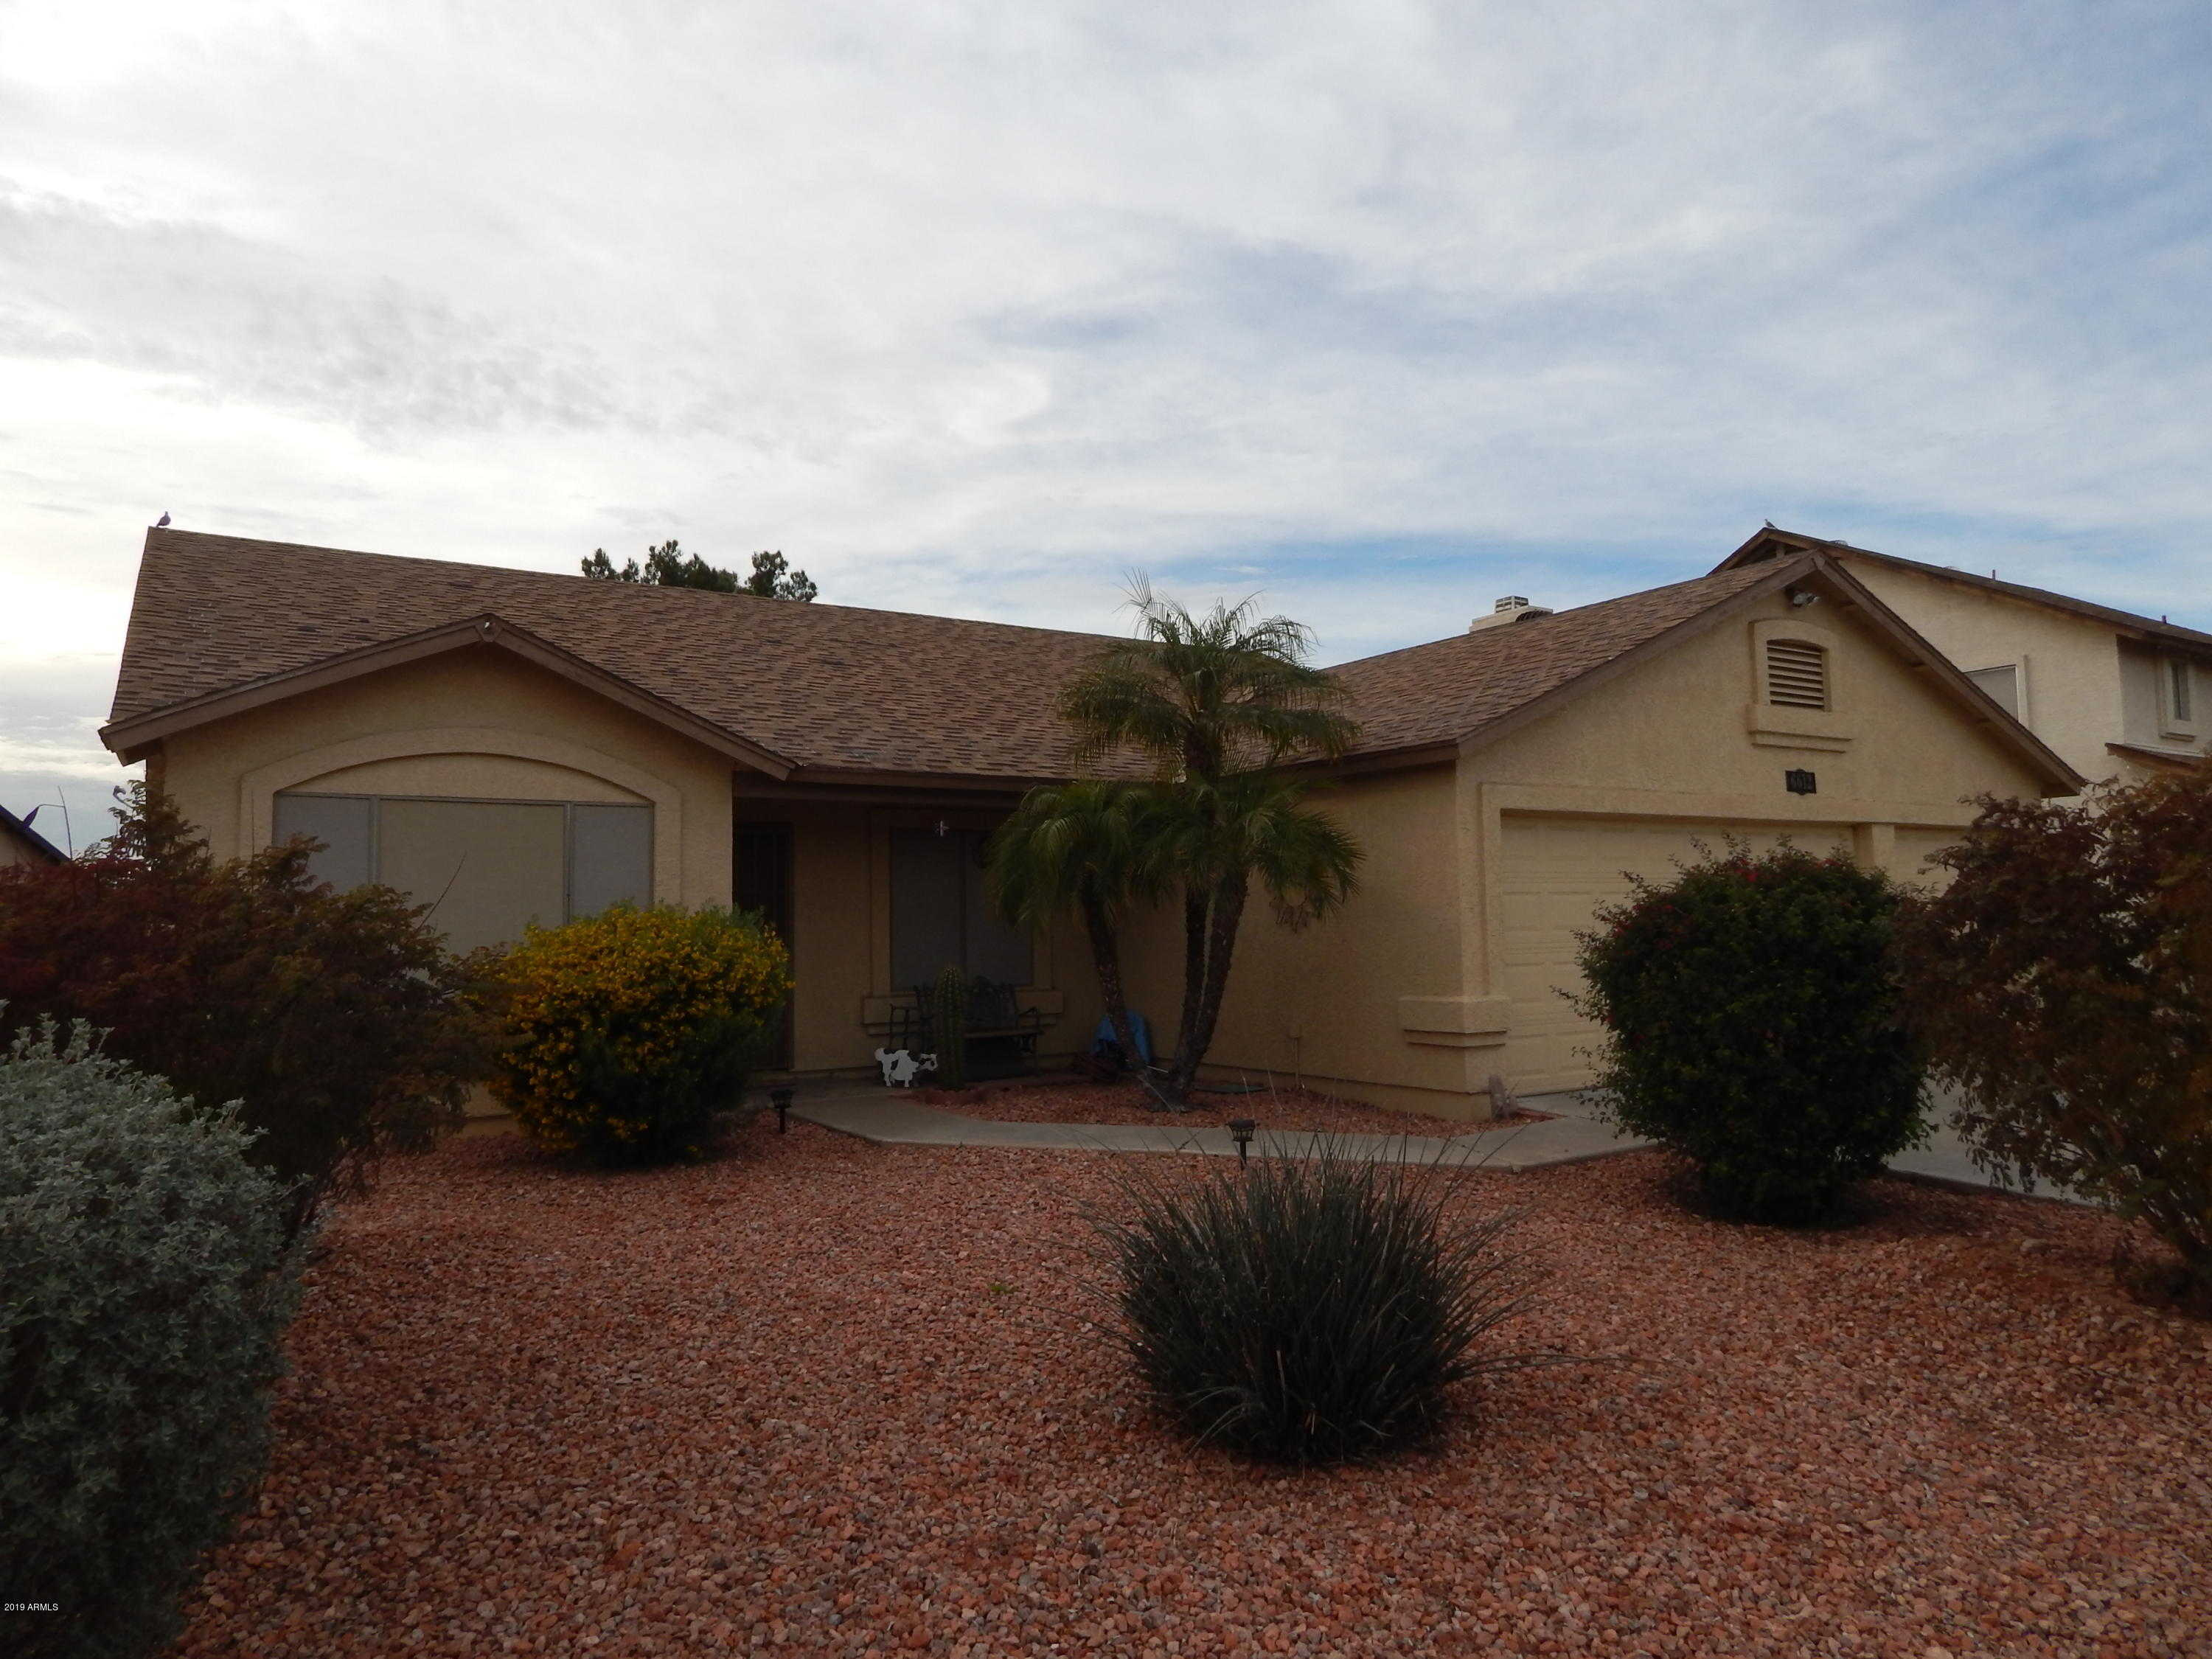 $219,000 - 3Br/2Ba - Home for Sale in West Plaza 31 & 32 Amd Lot 1-608 Tr A-c, Glendale